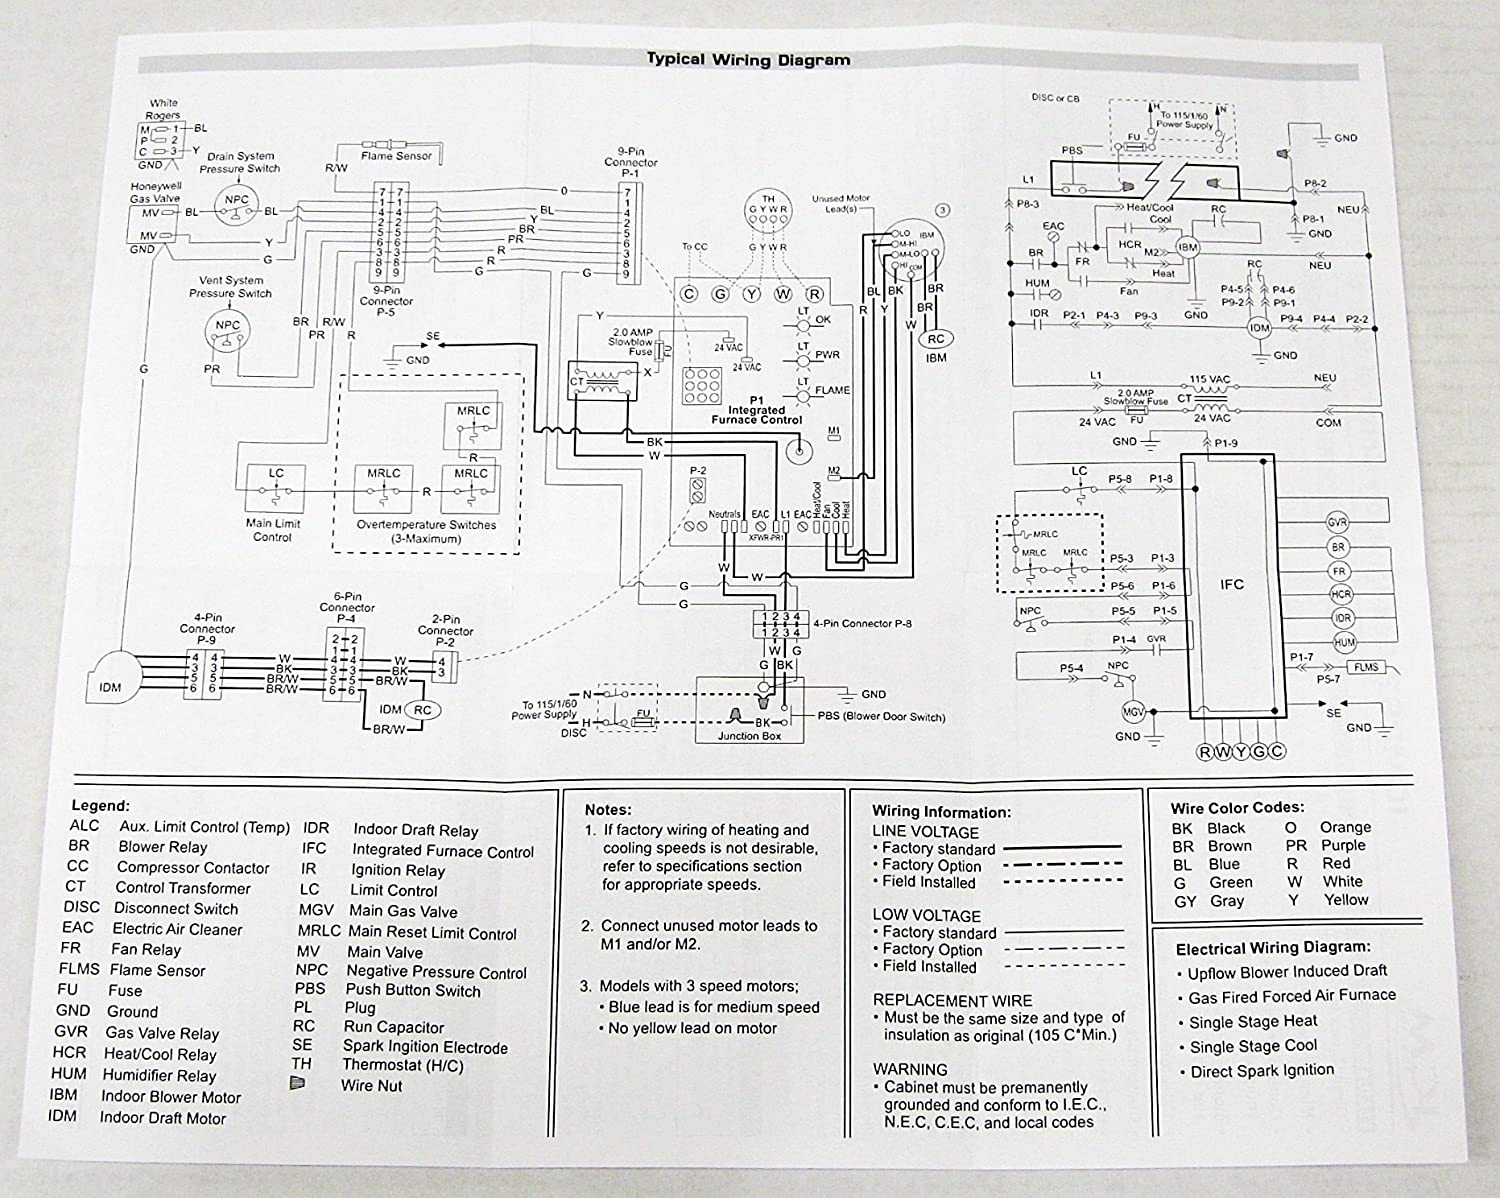 Icm Product 292 Electronic Motor Starters Industrial Circuit Board Wiring Diagram Scientific